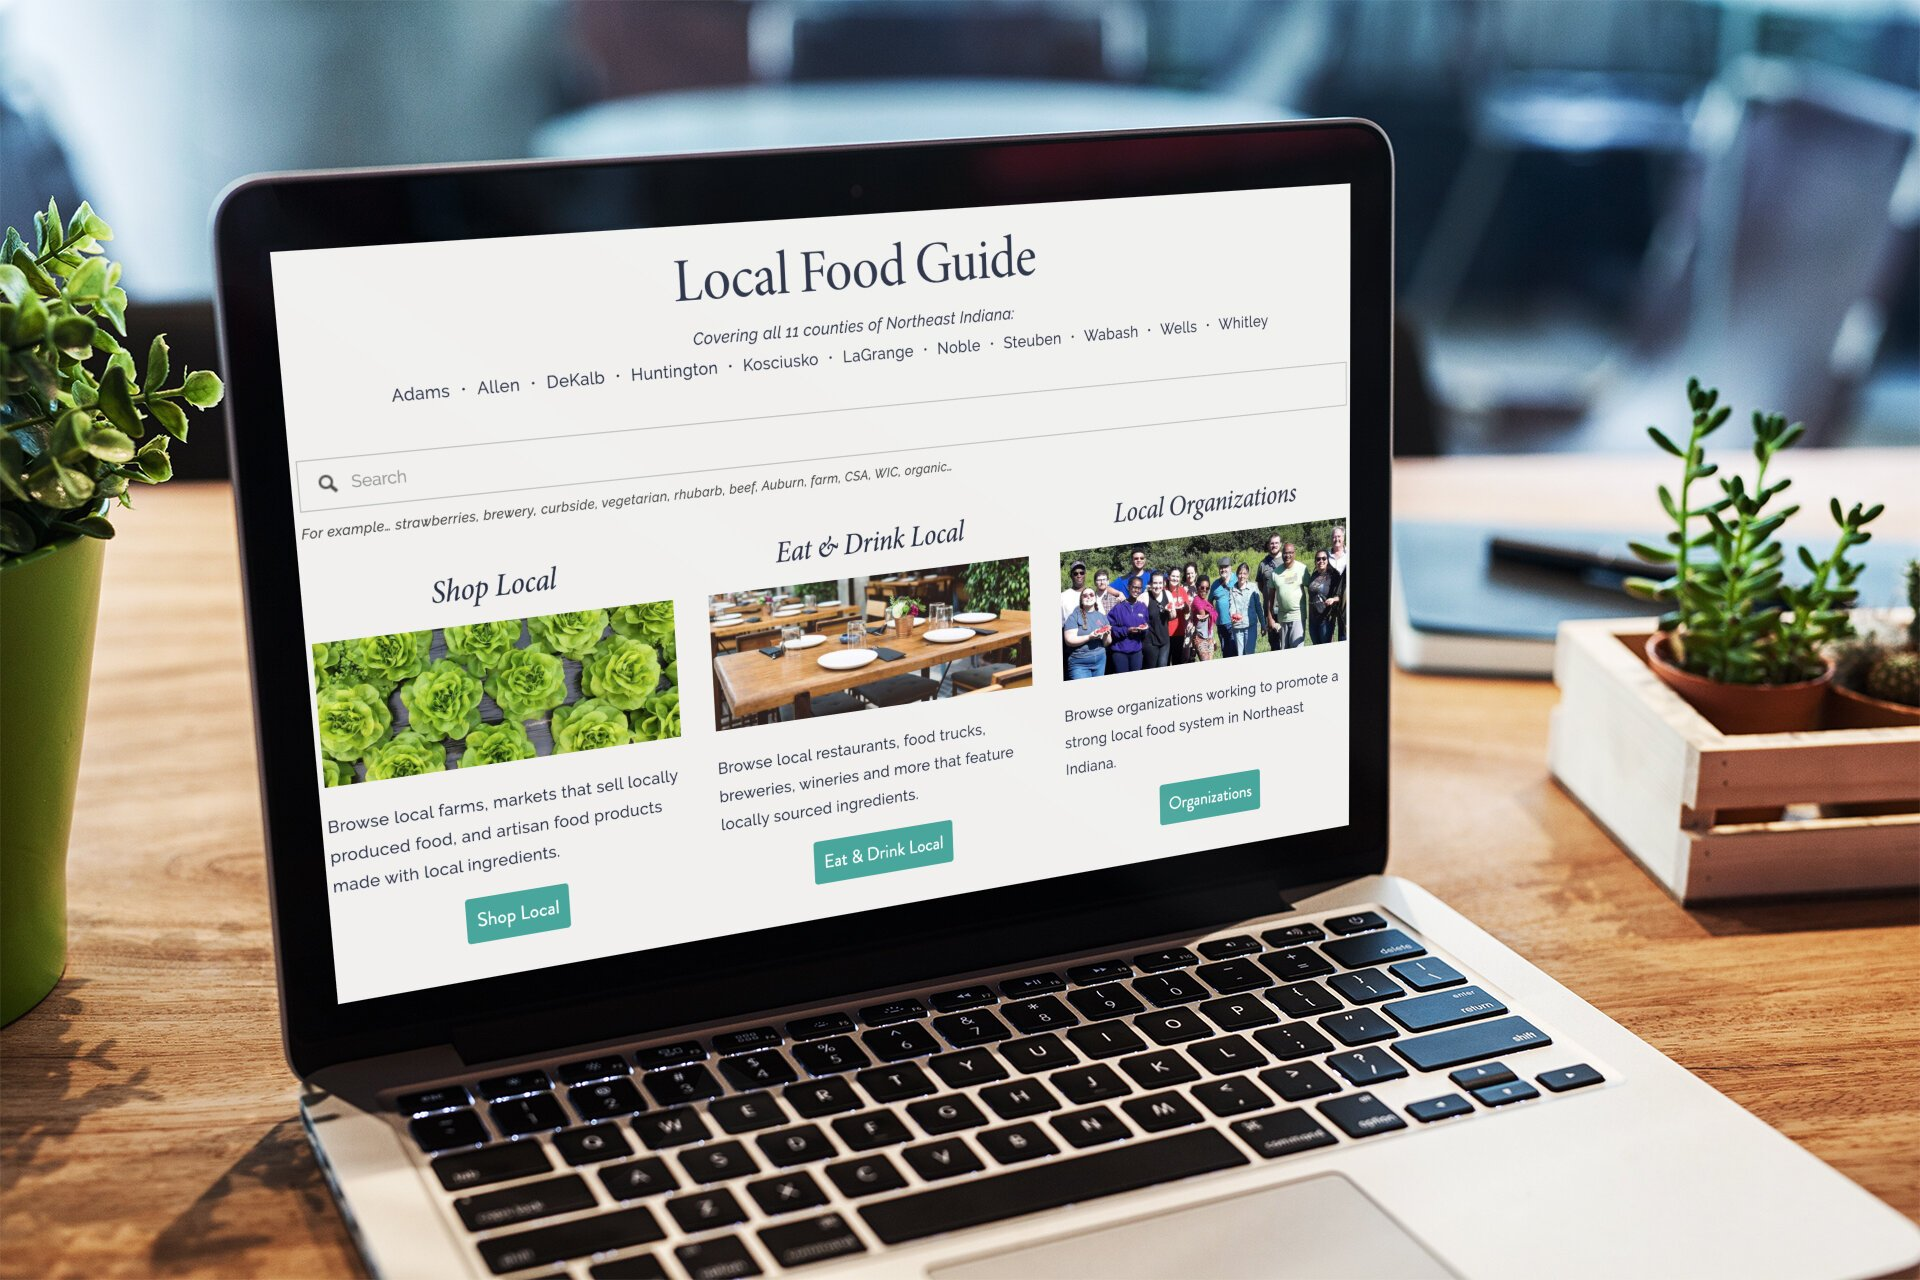 The Northeast Indiana Local Food Network launched a searchable Local Food Guide this week intended to serve farmers, producers, and consumers alike.